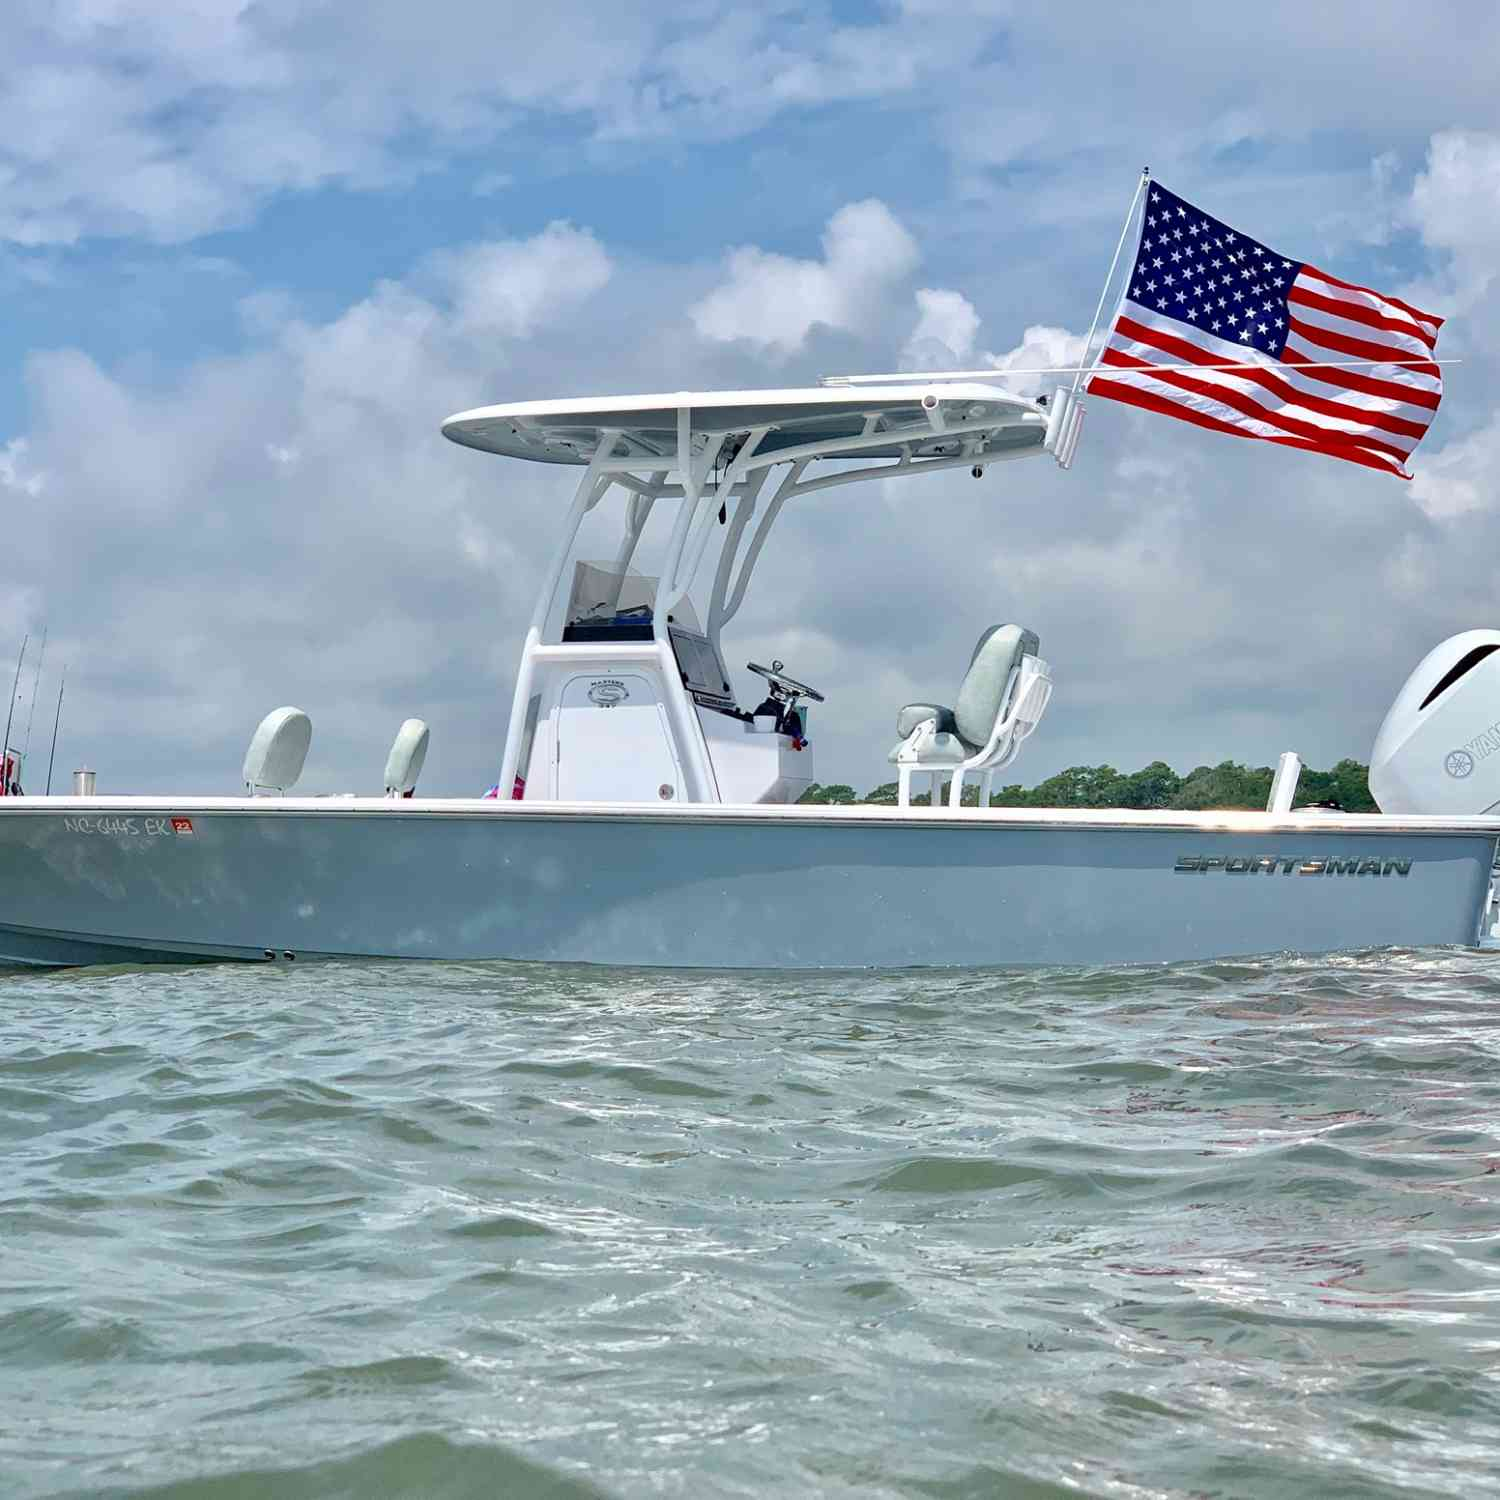 Title: 4th of July blowout - On board their Sportsman Masters 247 Bay Boat - Location: Ocean isle beach North Carolina. Participating in the Photo Contest #SportsmanJuly2019